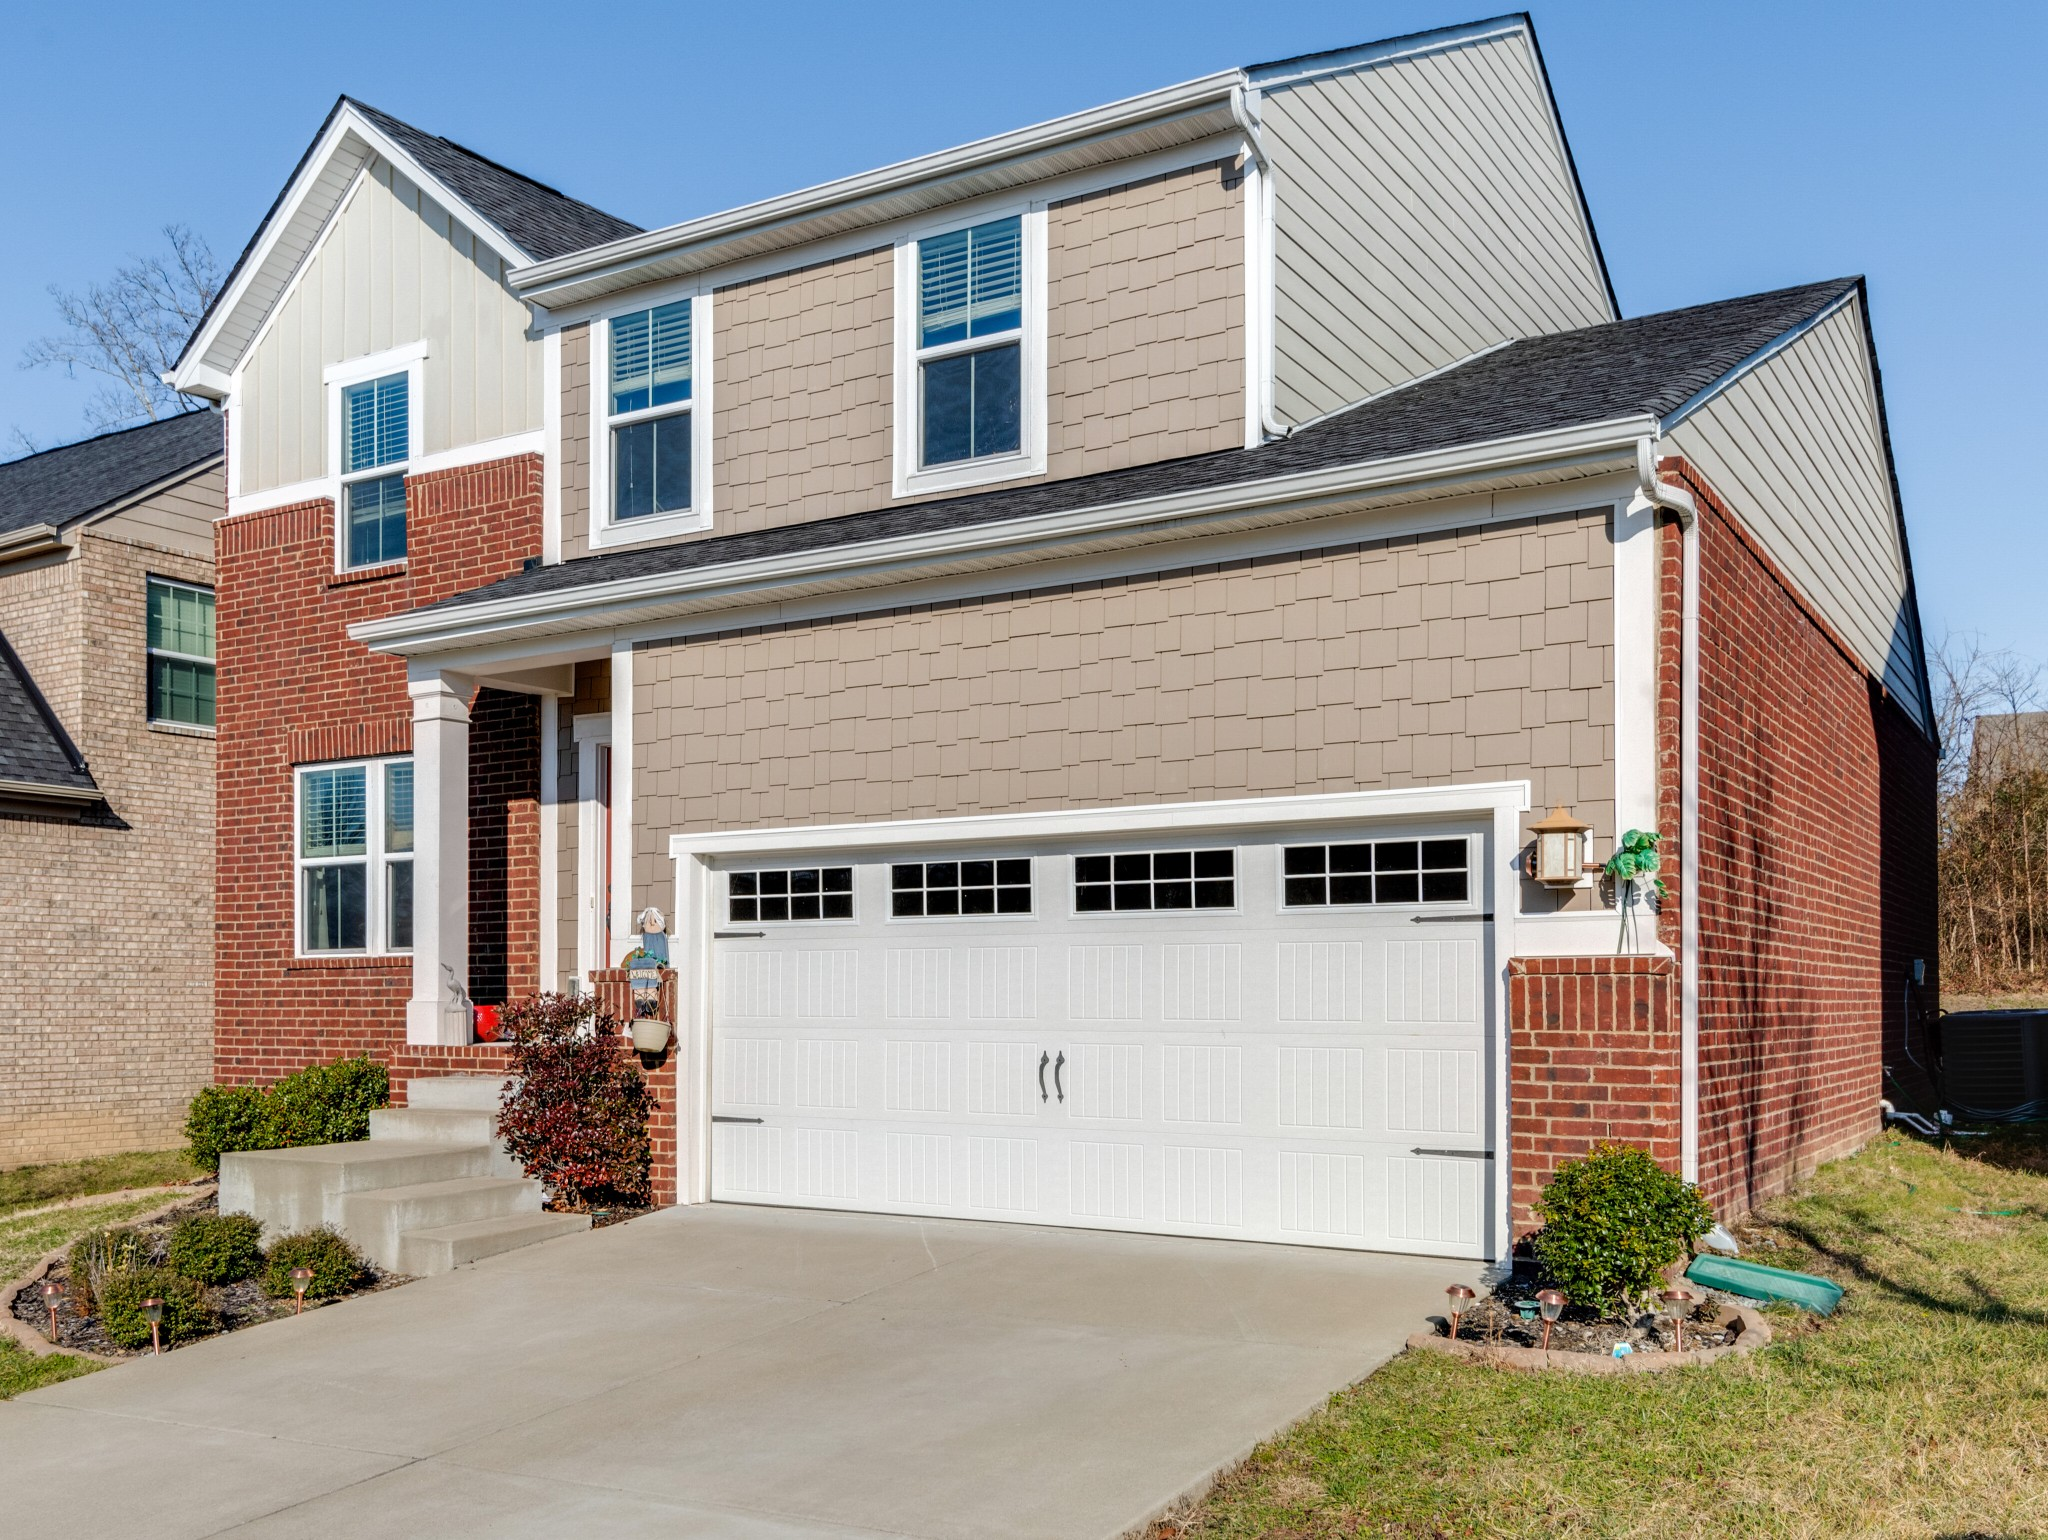 Excellent location to have 37027 Zip code.  Amazing newer construction in a kid friendly cul-de-sac neighborhood. Excellent location, convenient to Nolensville, Cool Springs, grocery, banks, parks, golfing, walking trail, shopping, and great restaurants in Mill Creek and Lenox Village, with easy access to I-65 and 24. Upstairs bonus could possibly become 4th bedroom. Rare opportunity. Open house: January 10th, 2:00 pm - 4:00 pm